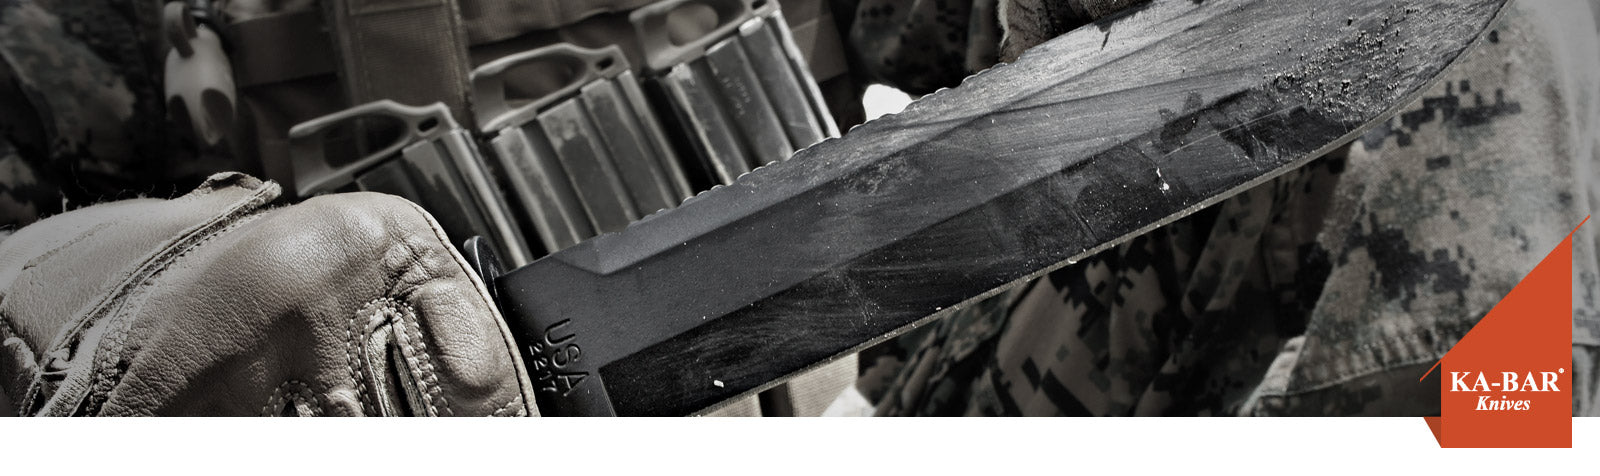 high quality military, hunting, sporting and outdoor survival knives.